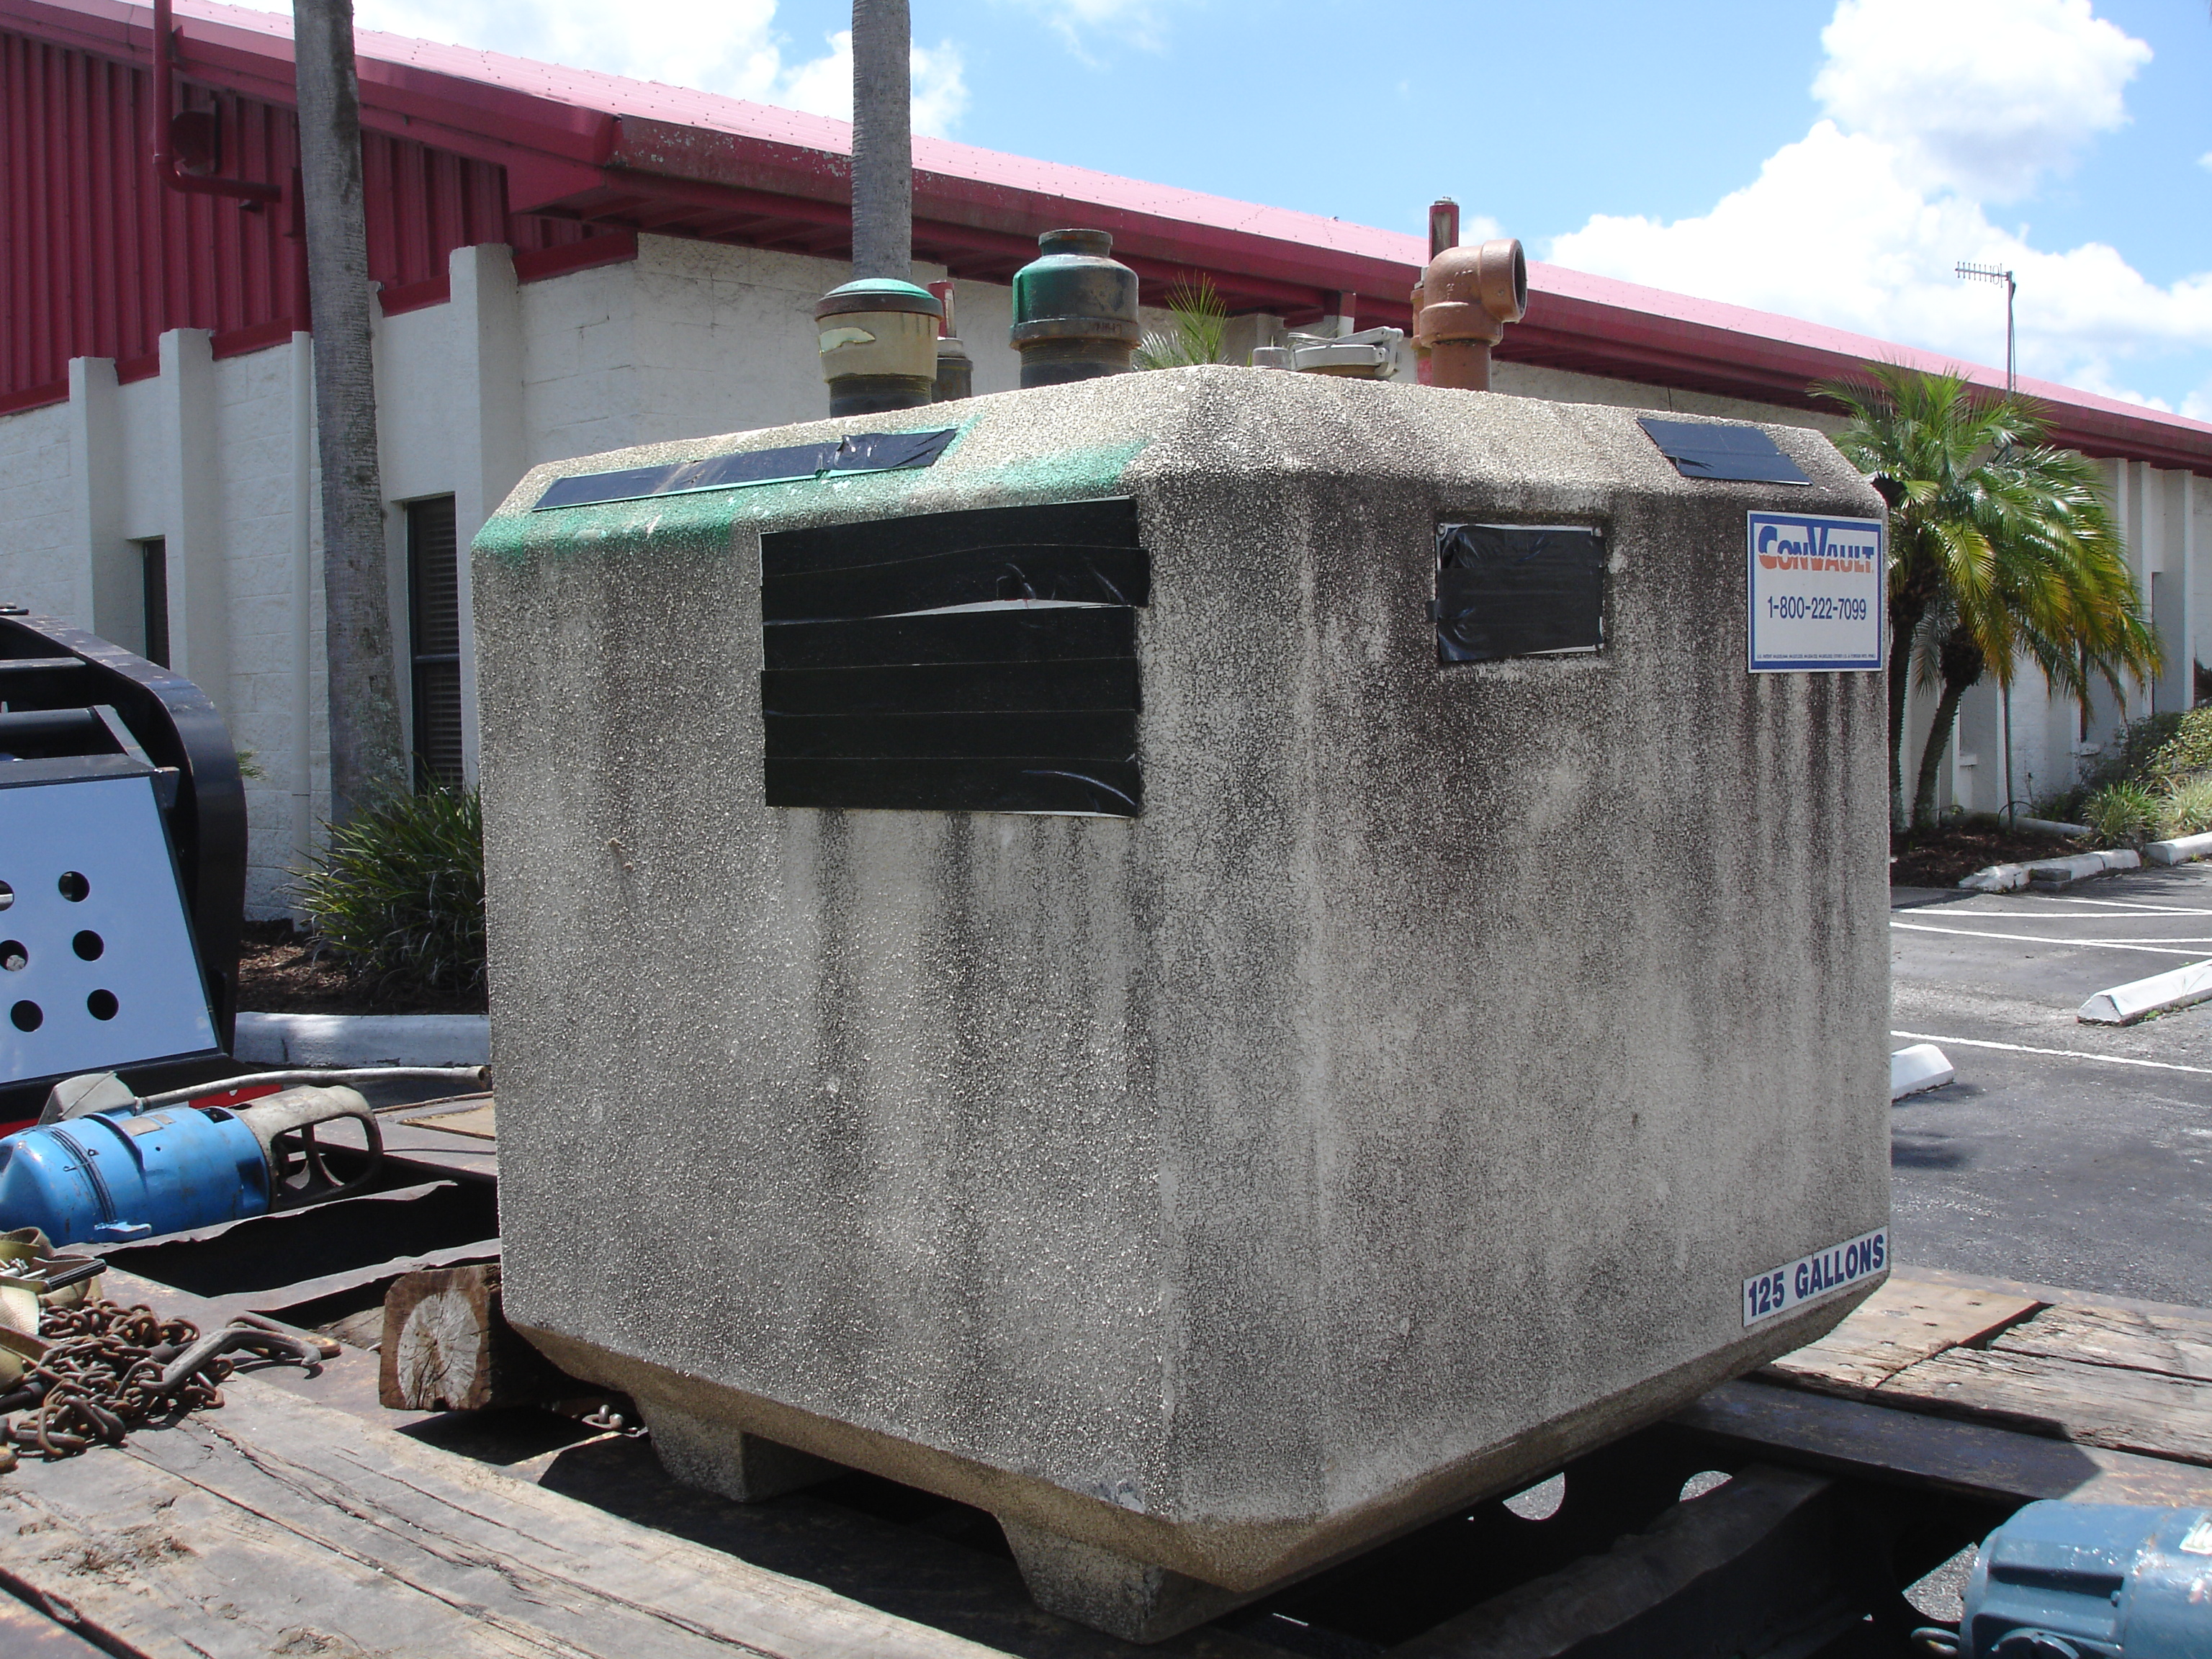 Used ConVault 125 gallon above ground fuel tank